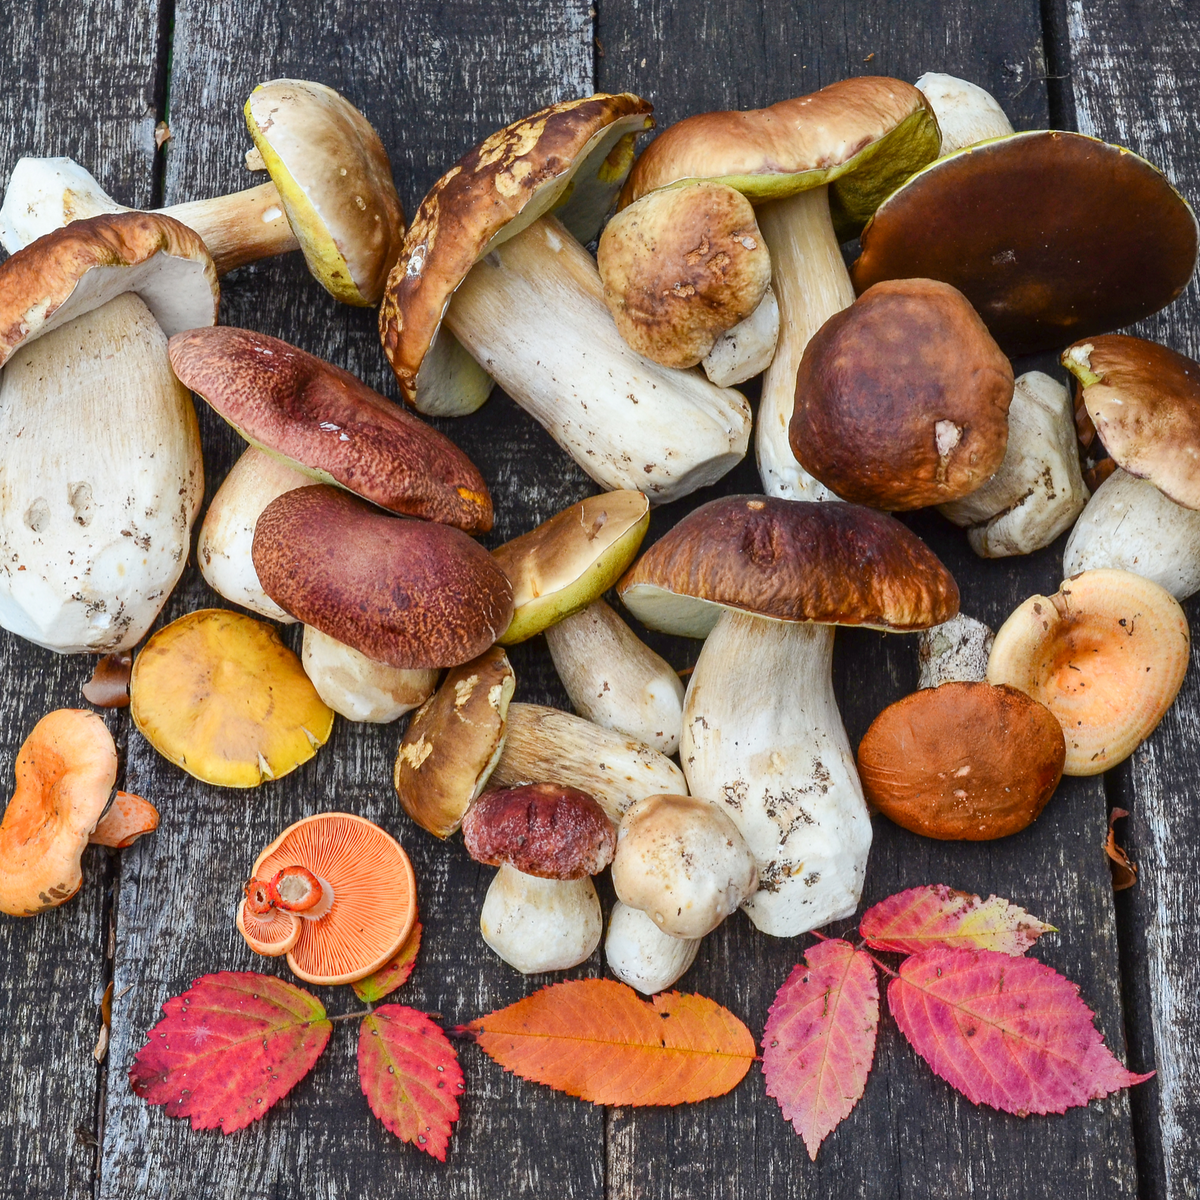 Stinkhorns, truffles, smuts: The amazing diversity – and possible